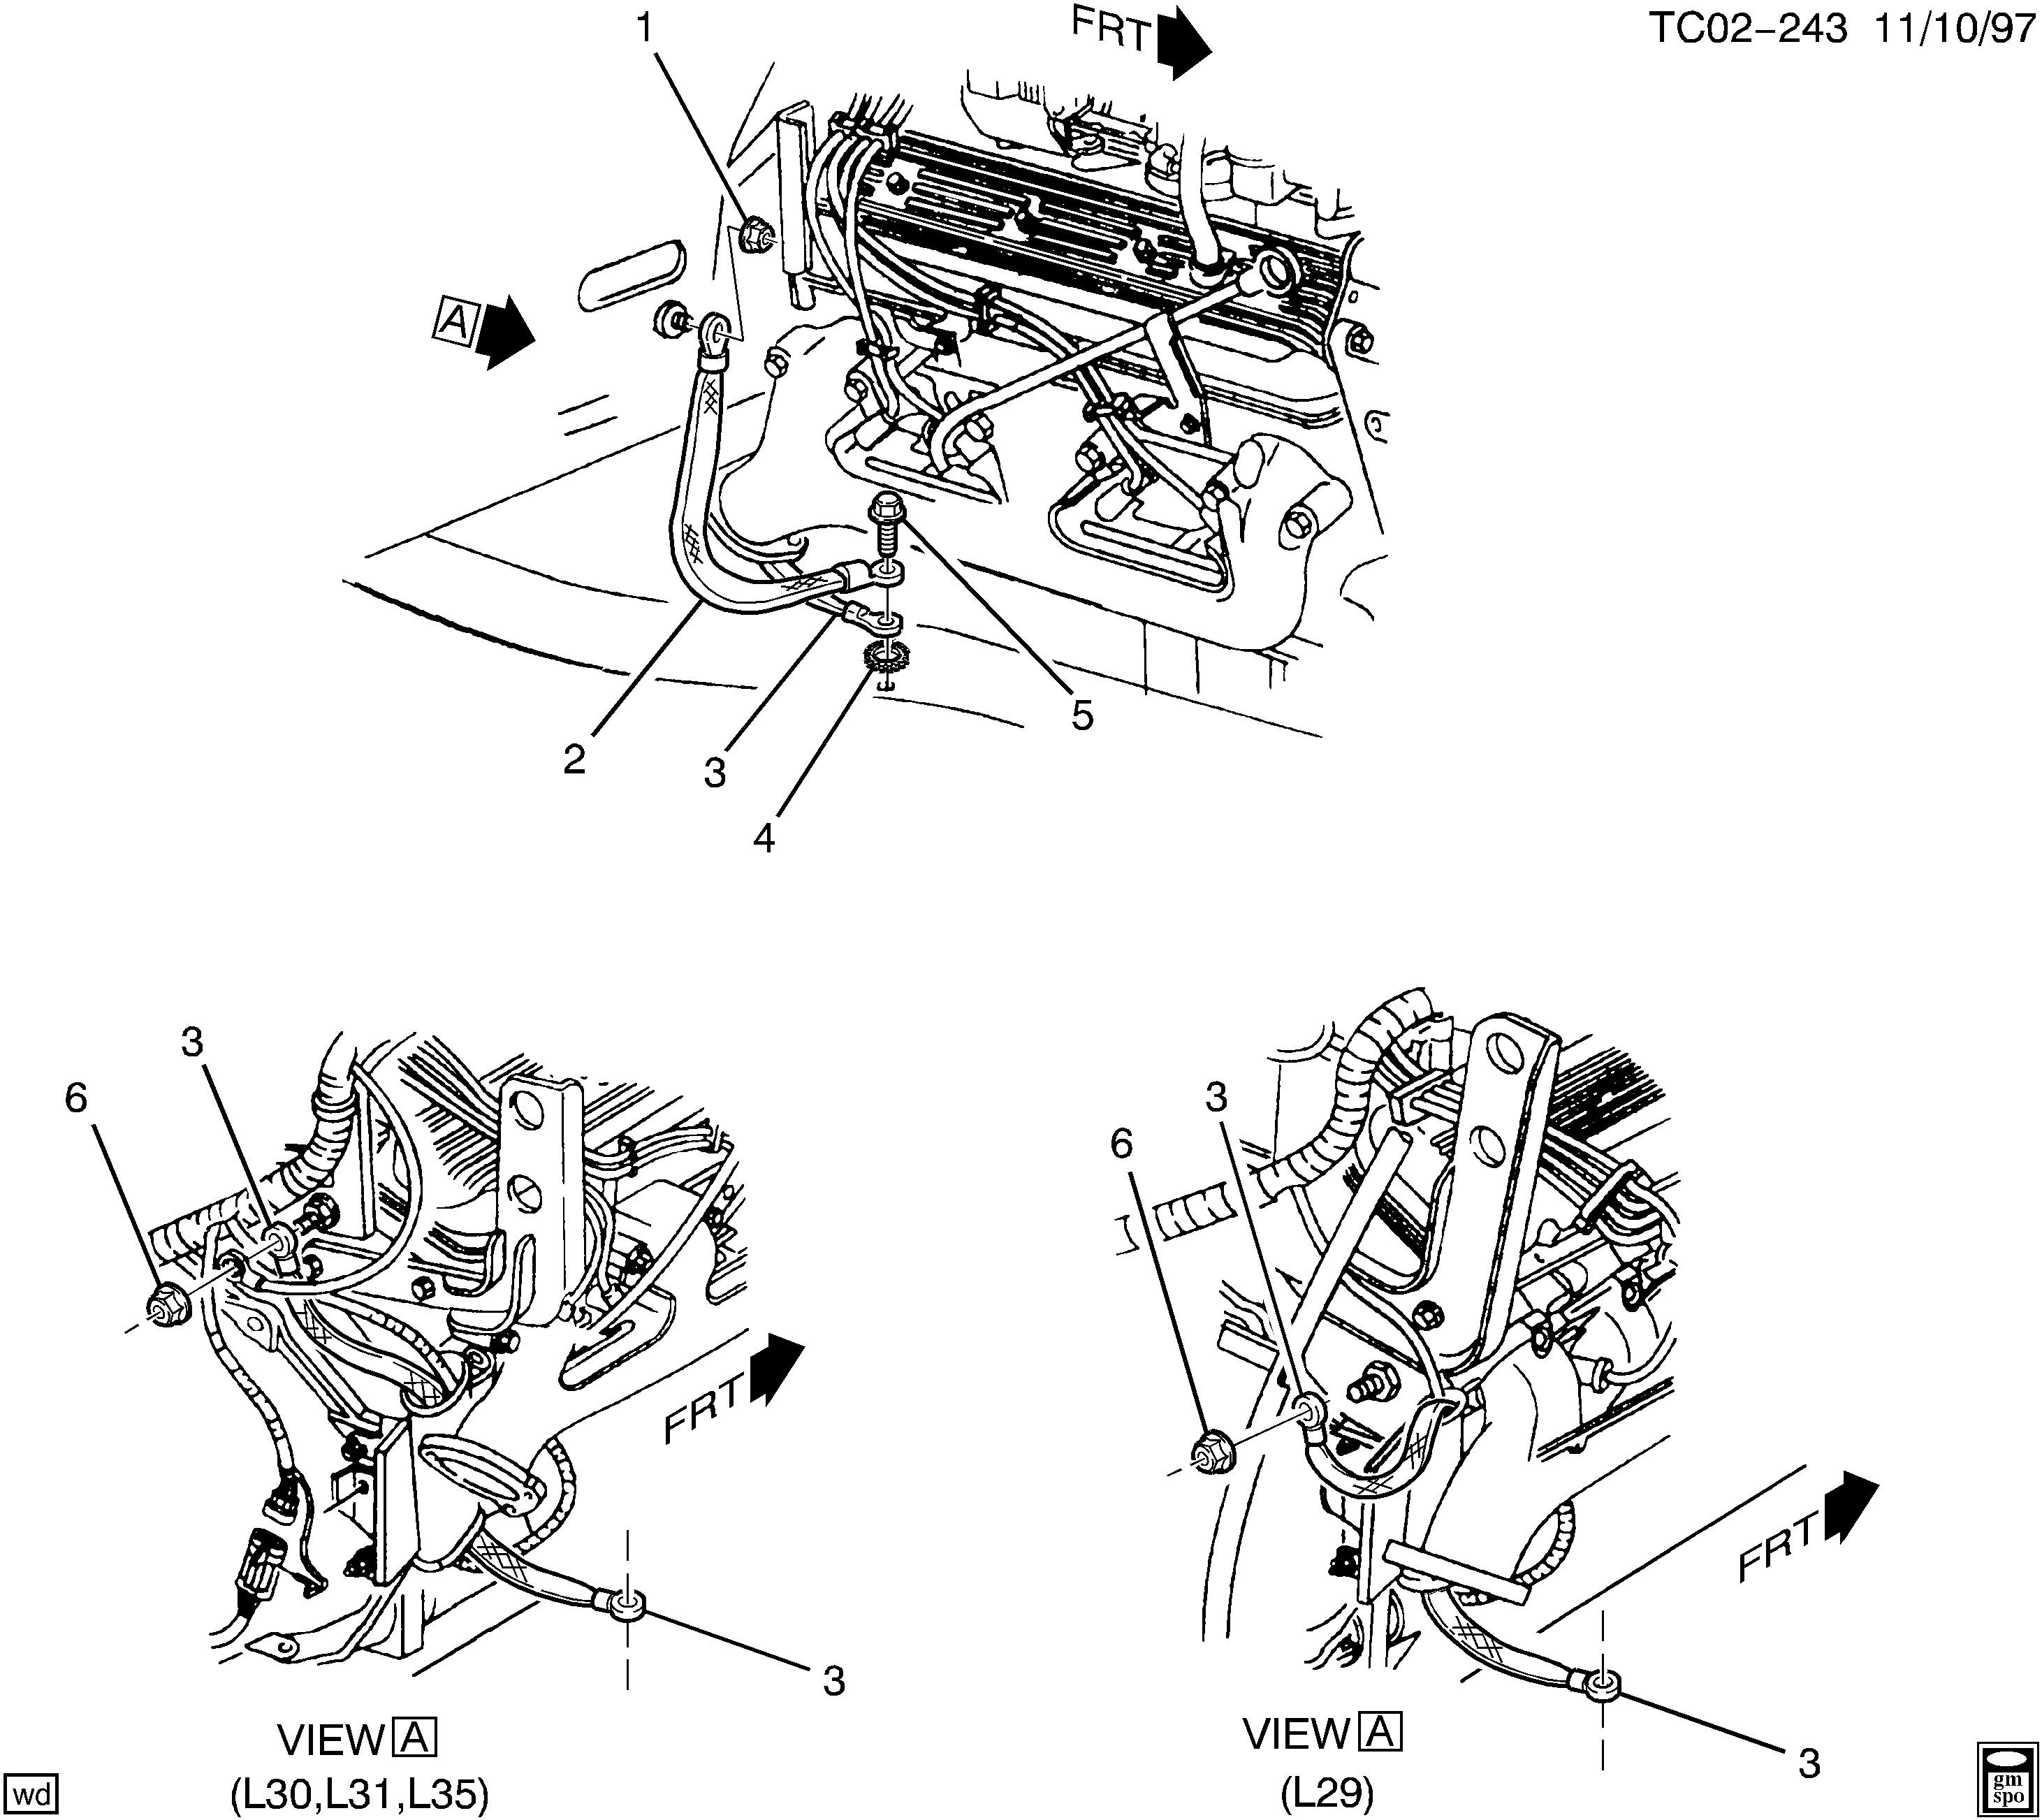 61090 c1500 suburban 2wd wiring harness ground straps \u003e chevrolet epc Wiring Harness Diagram at panicattacktreatment.co